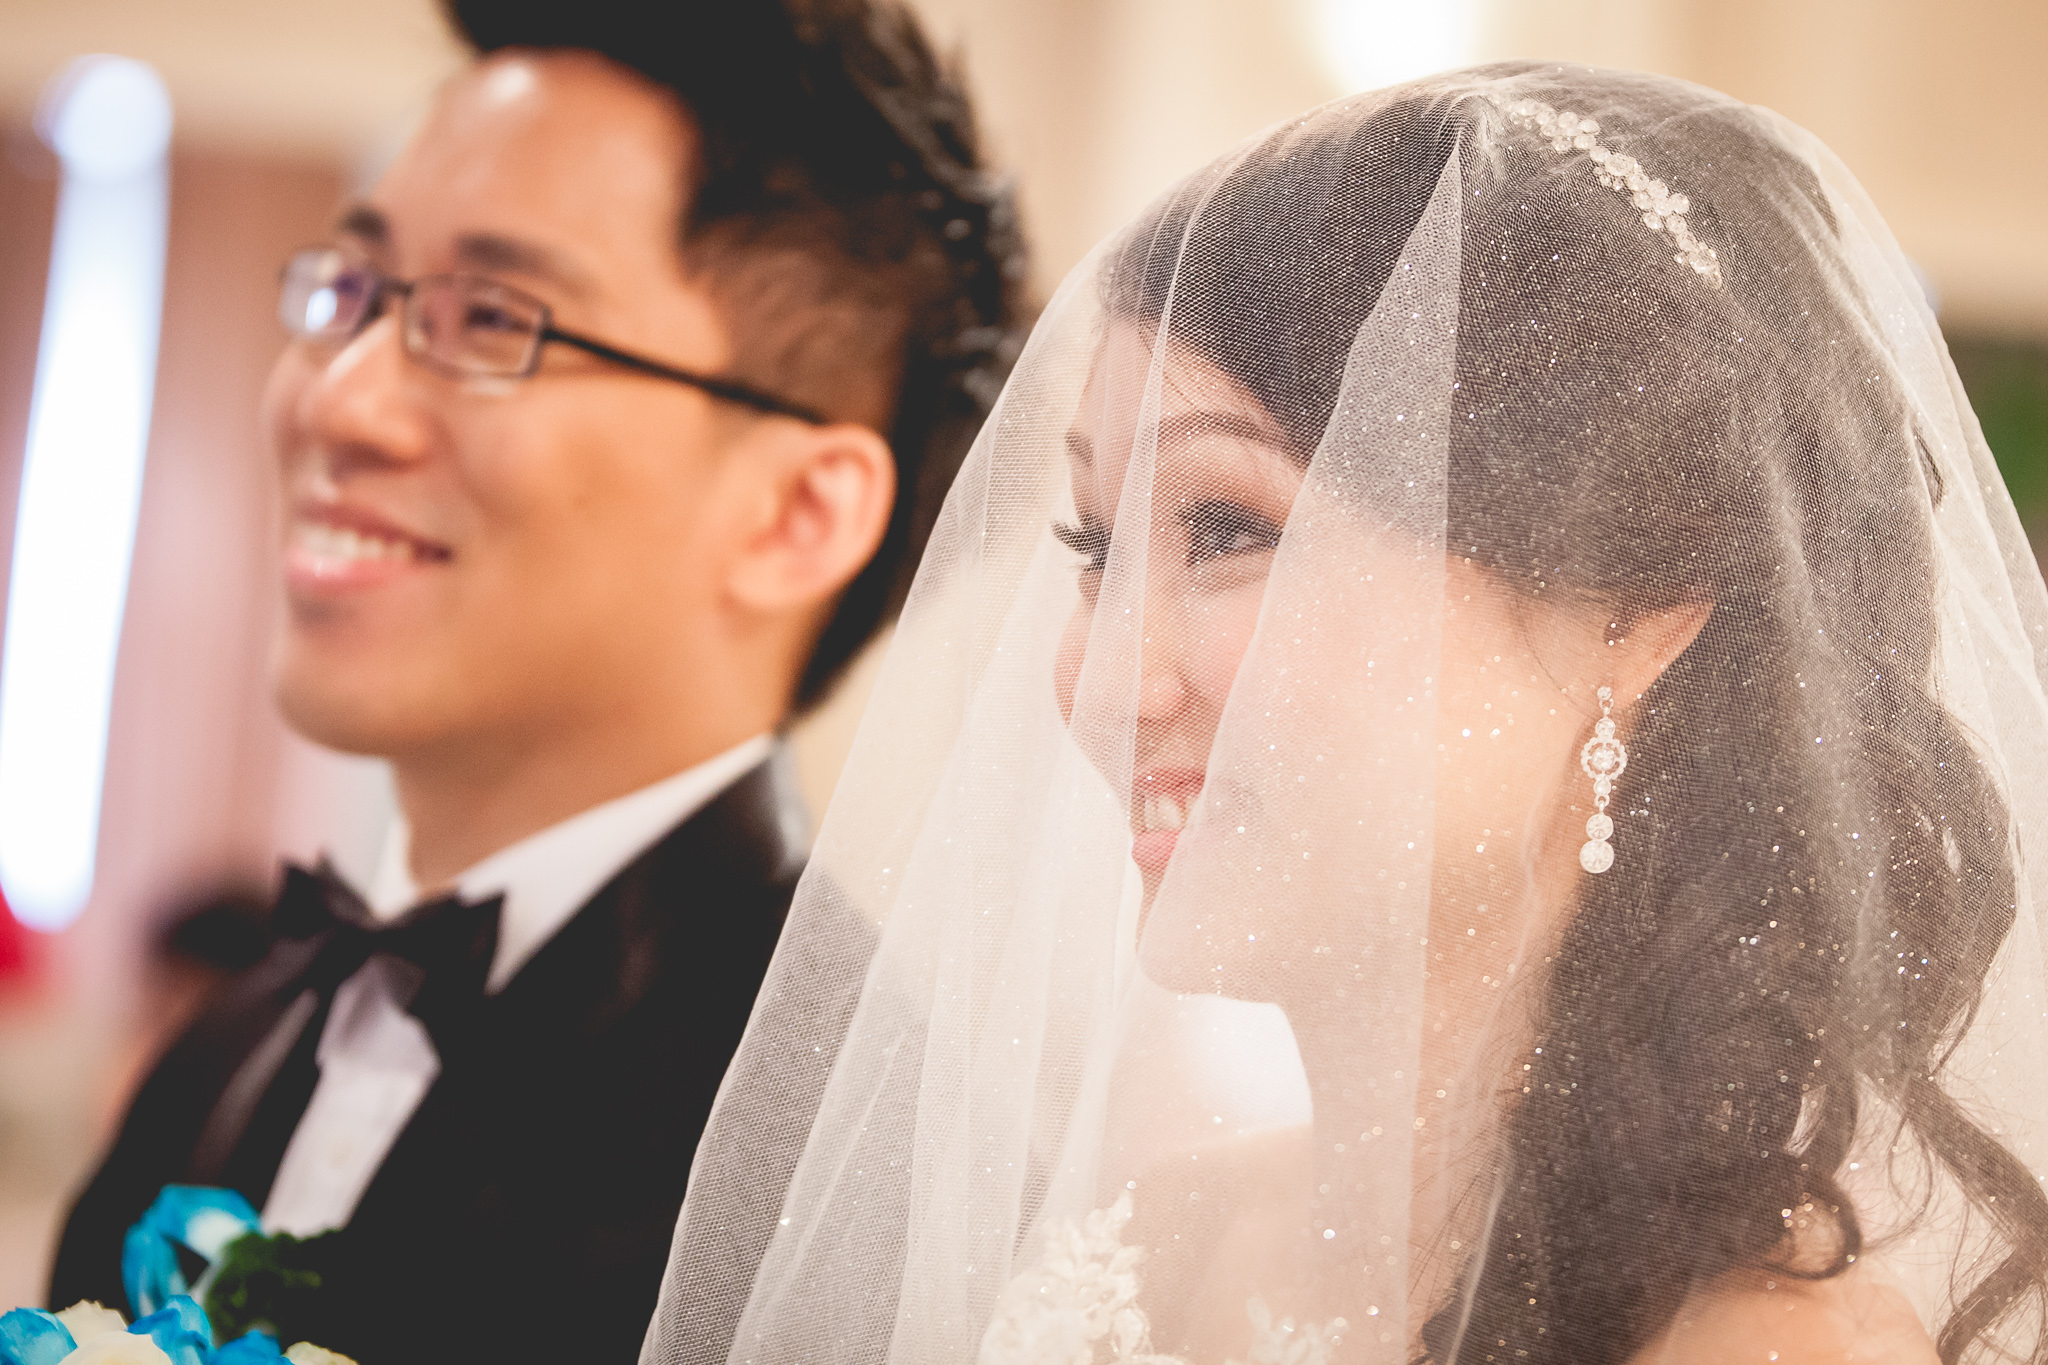 Yunfeng & Natalie Wedding Day Selects (Resized for sharing) -062.jpg